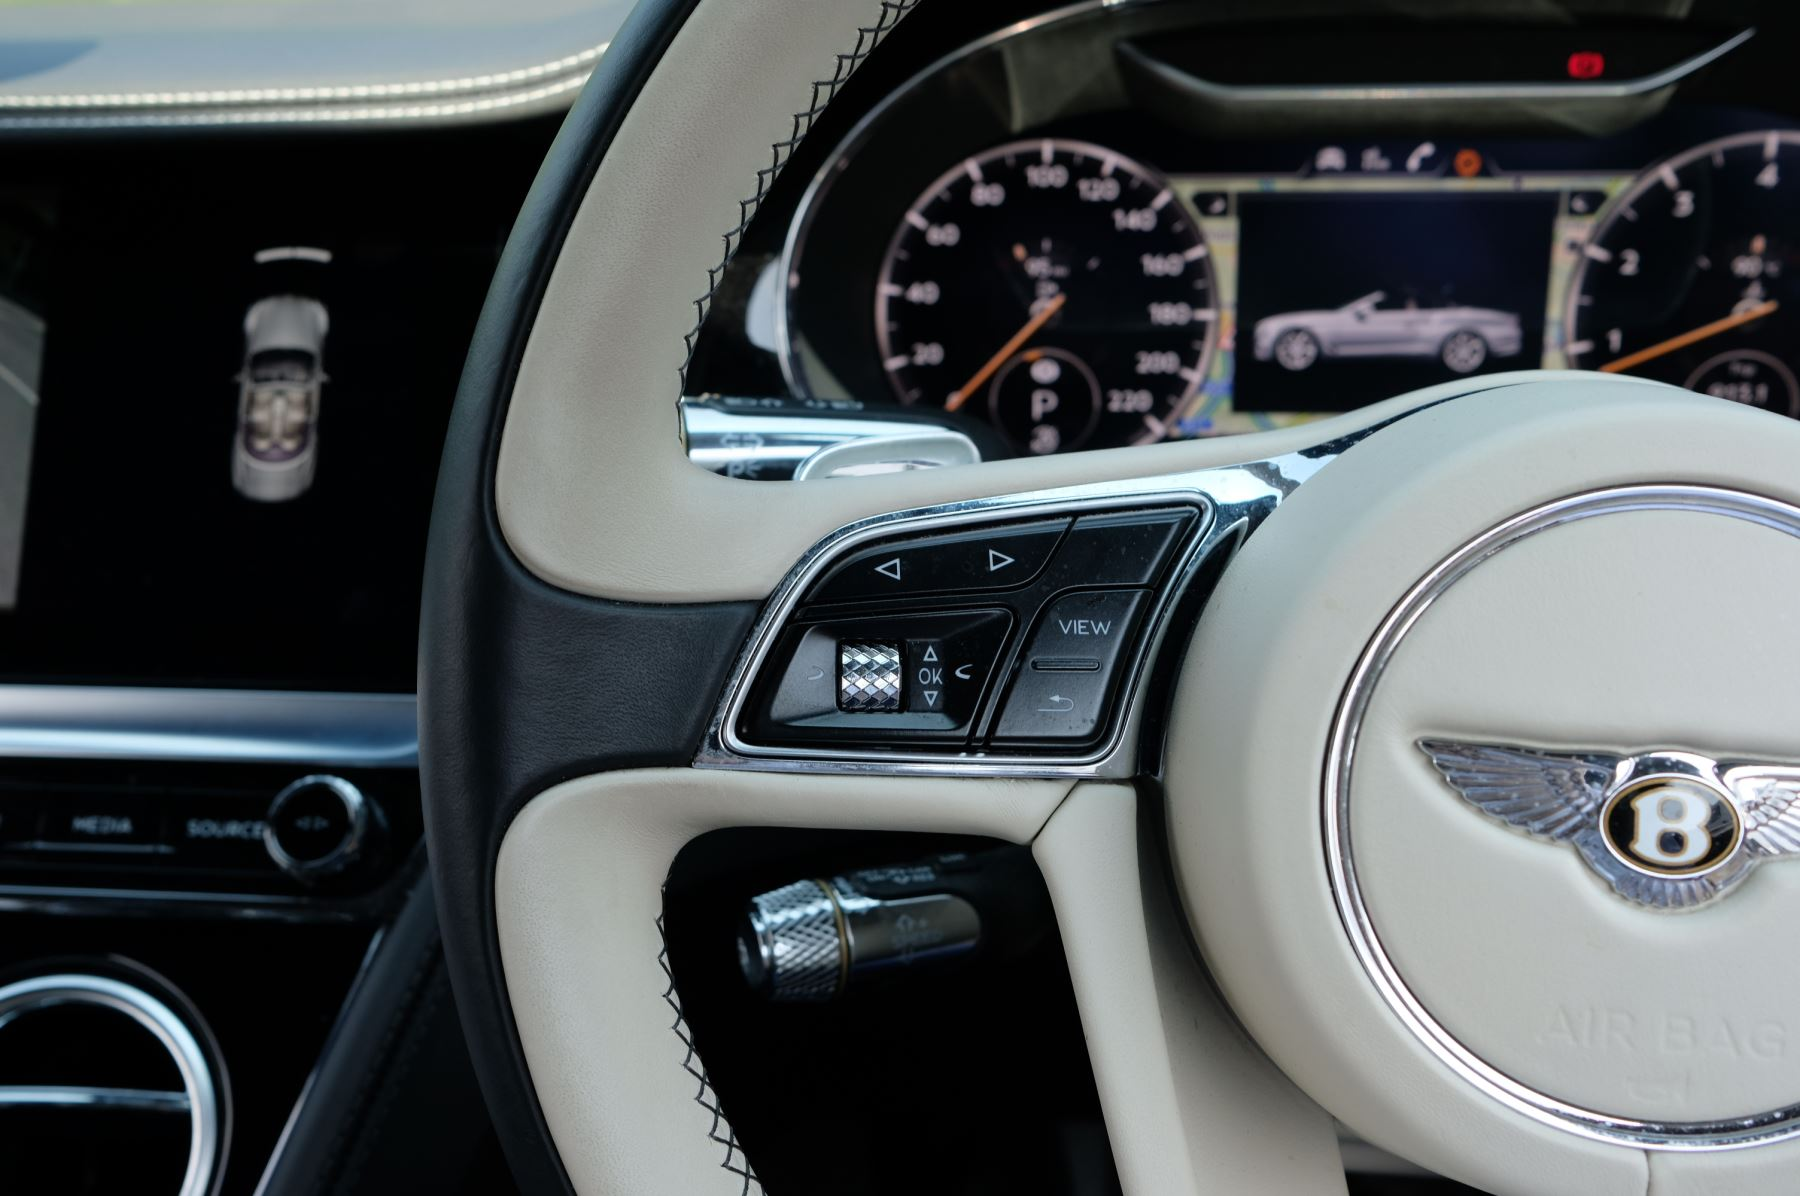 Bentley Continental GTC 6.0 W12 - Mulliner Driving Specification and Centenary Specification image 21